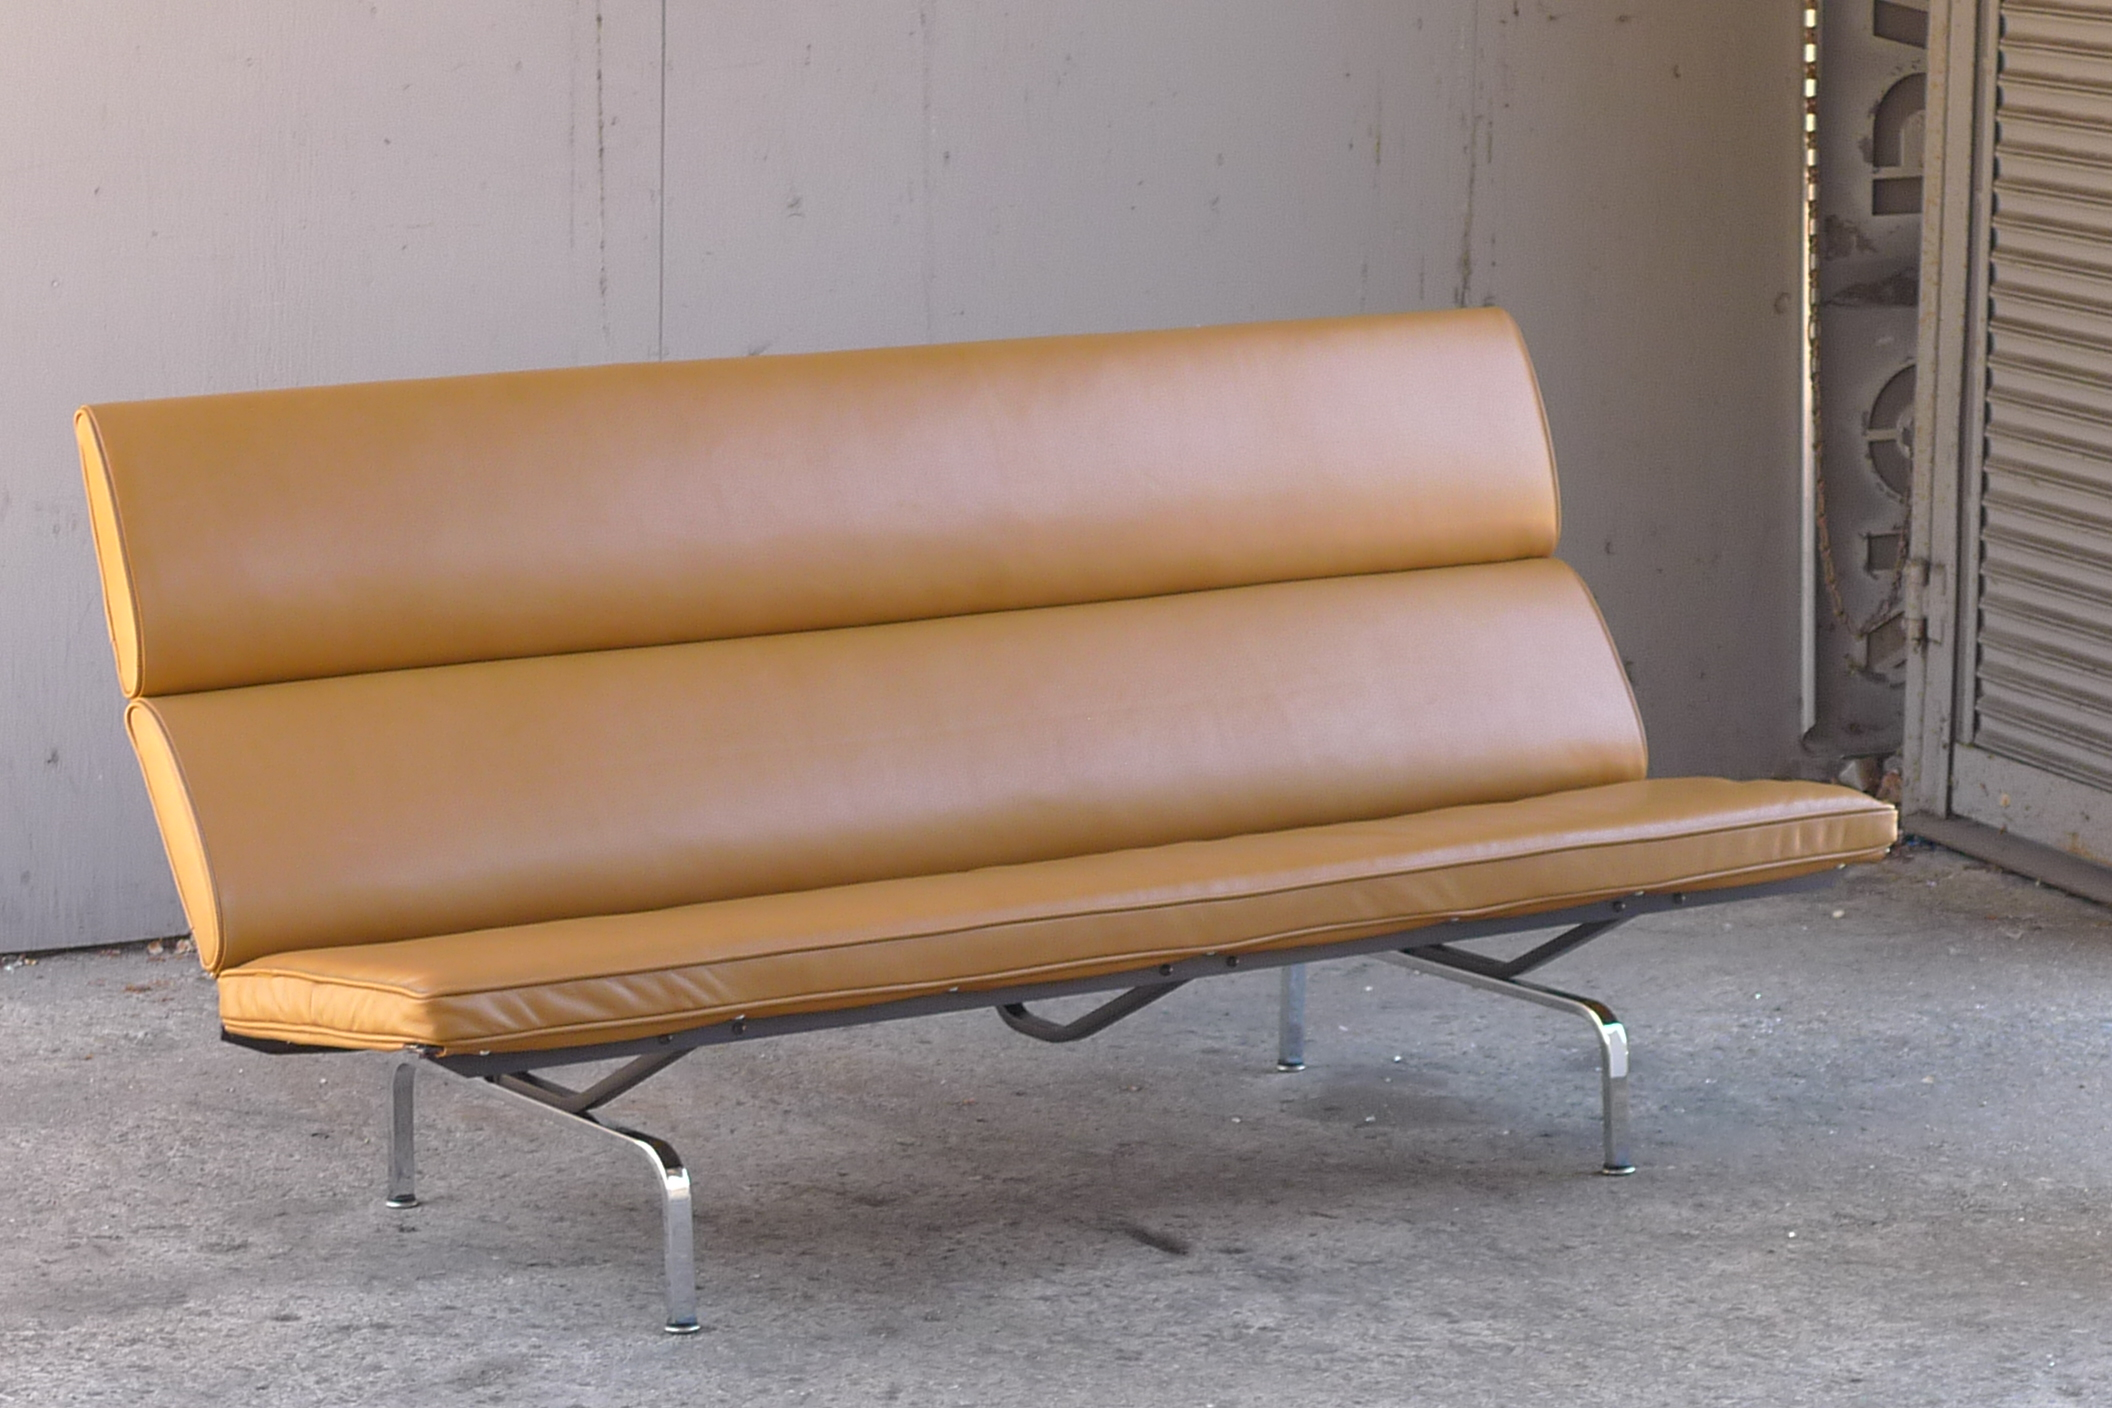 eames sofa compact table with stools underneath charles for herman miller service brown